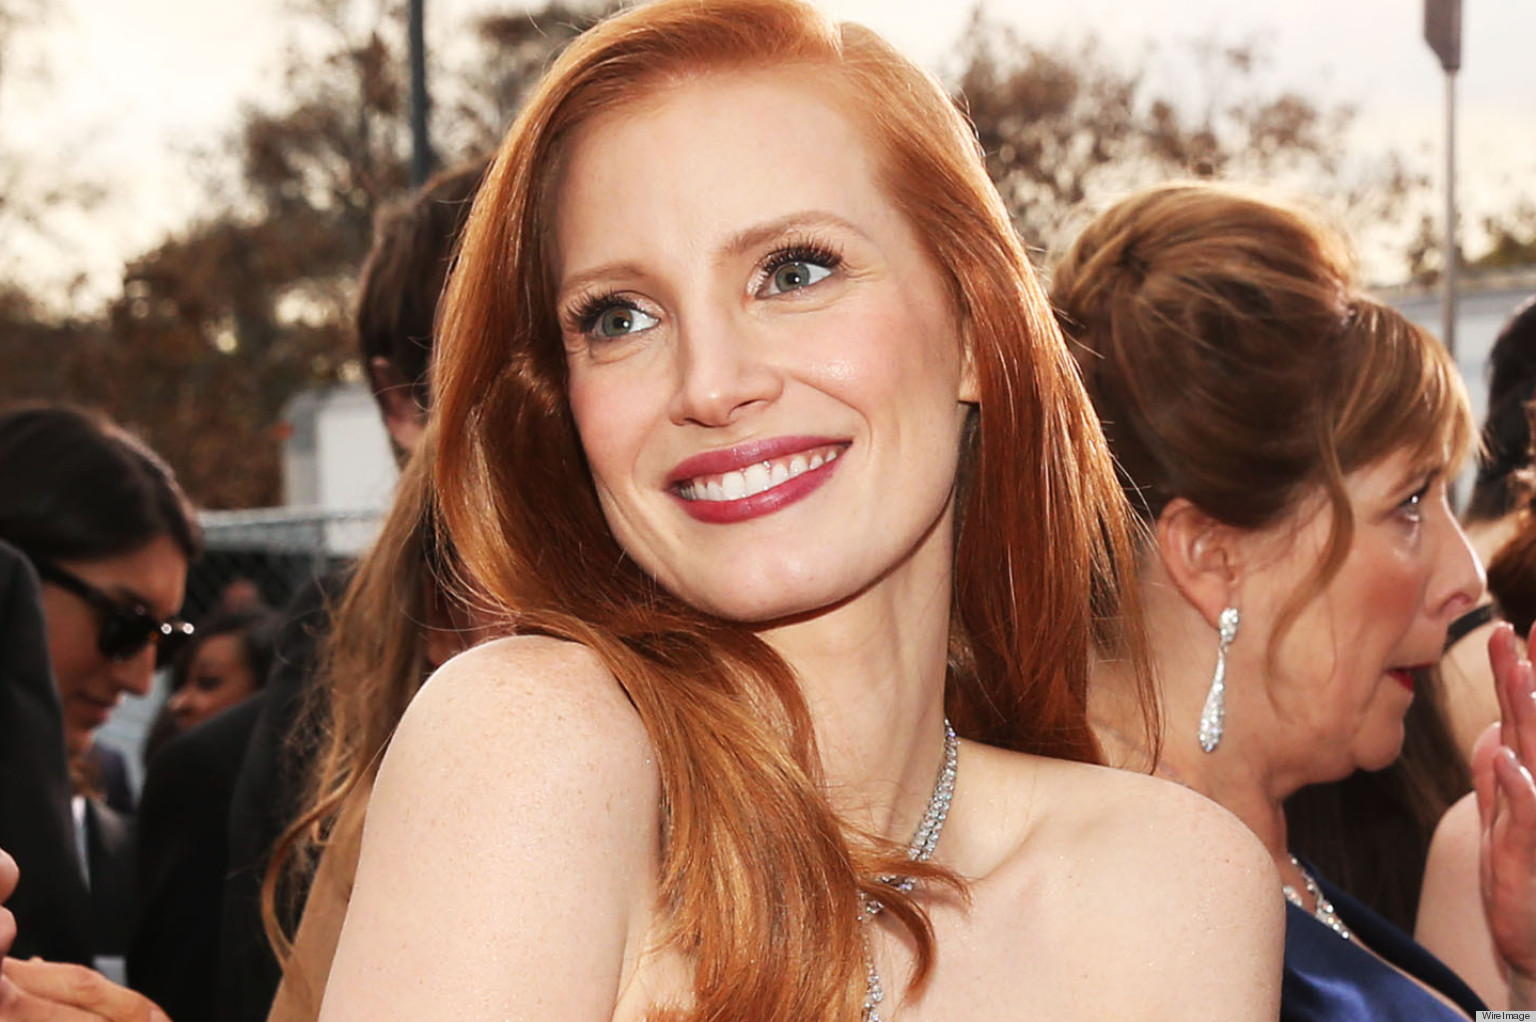 o-JESSICA-CHASTAIN-SAG-AWARDS-facebook.jpg (1536×1022)